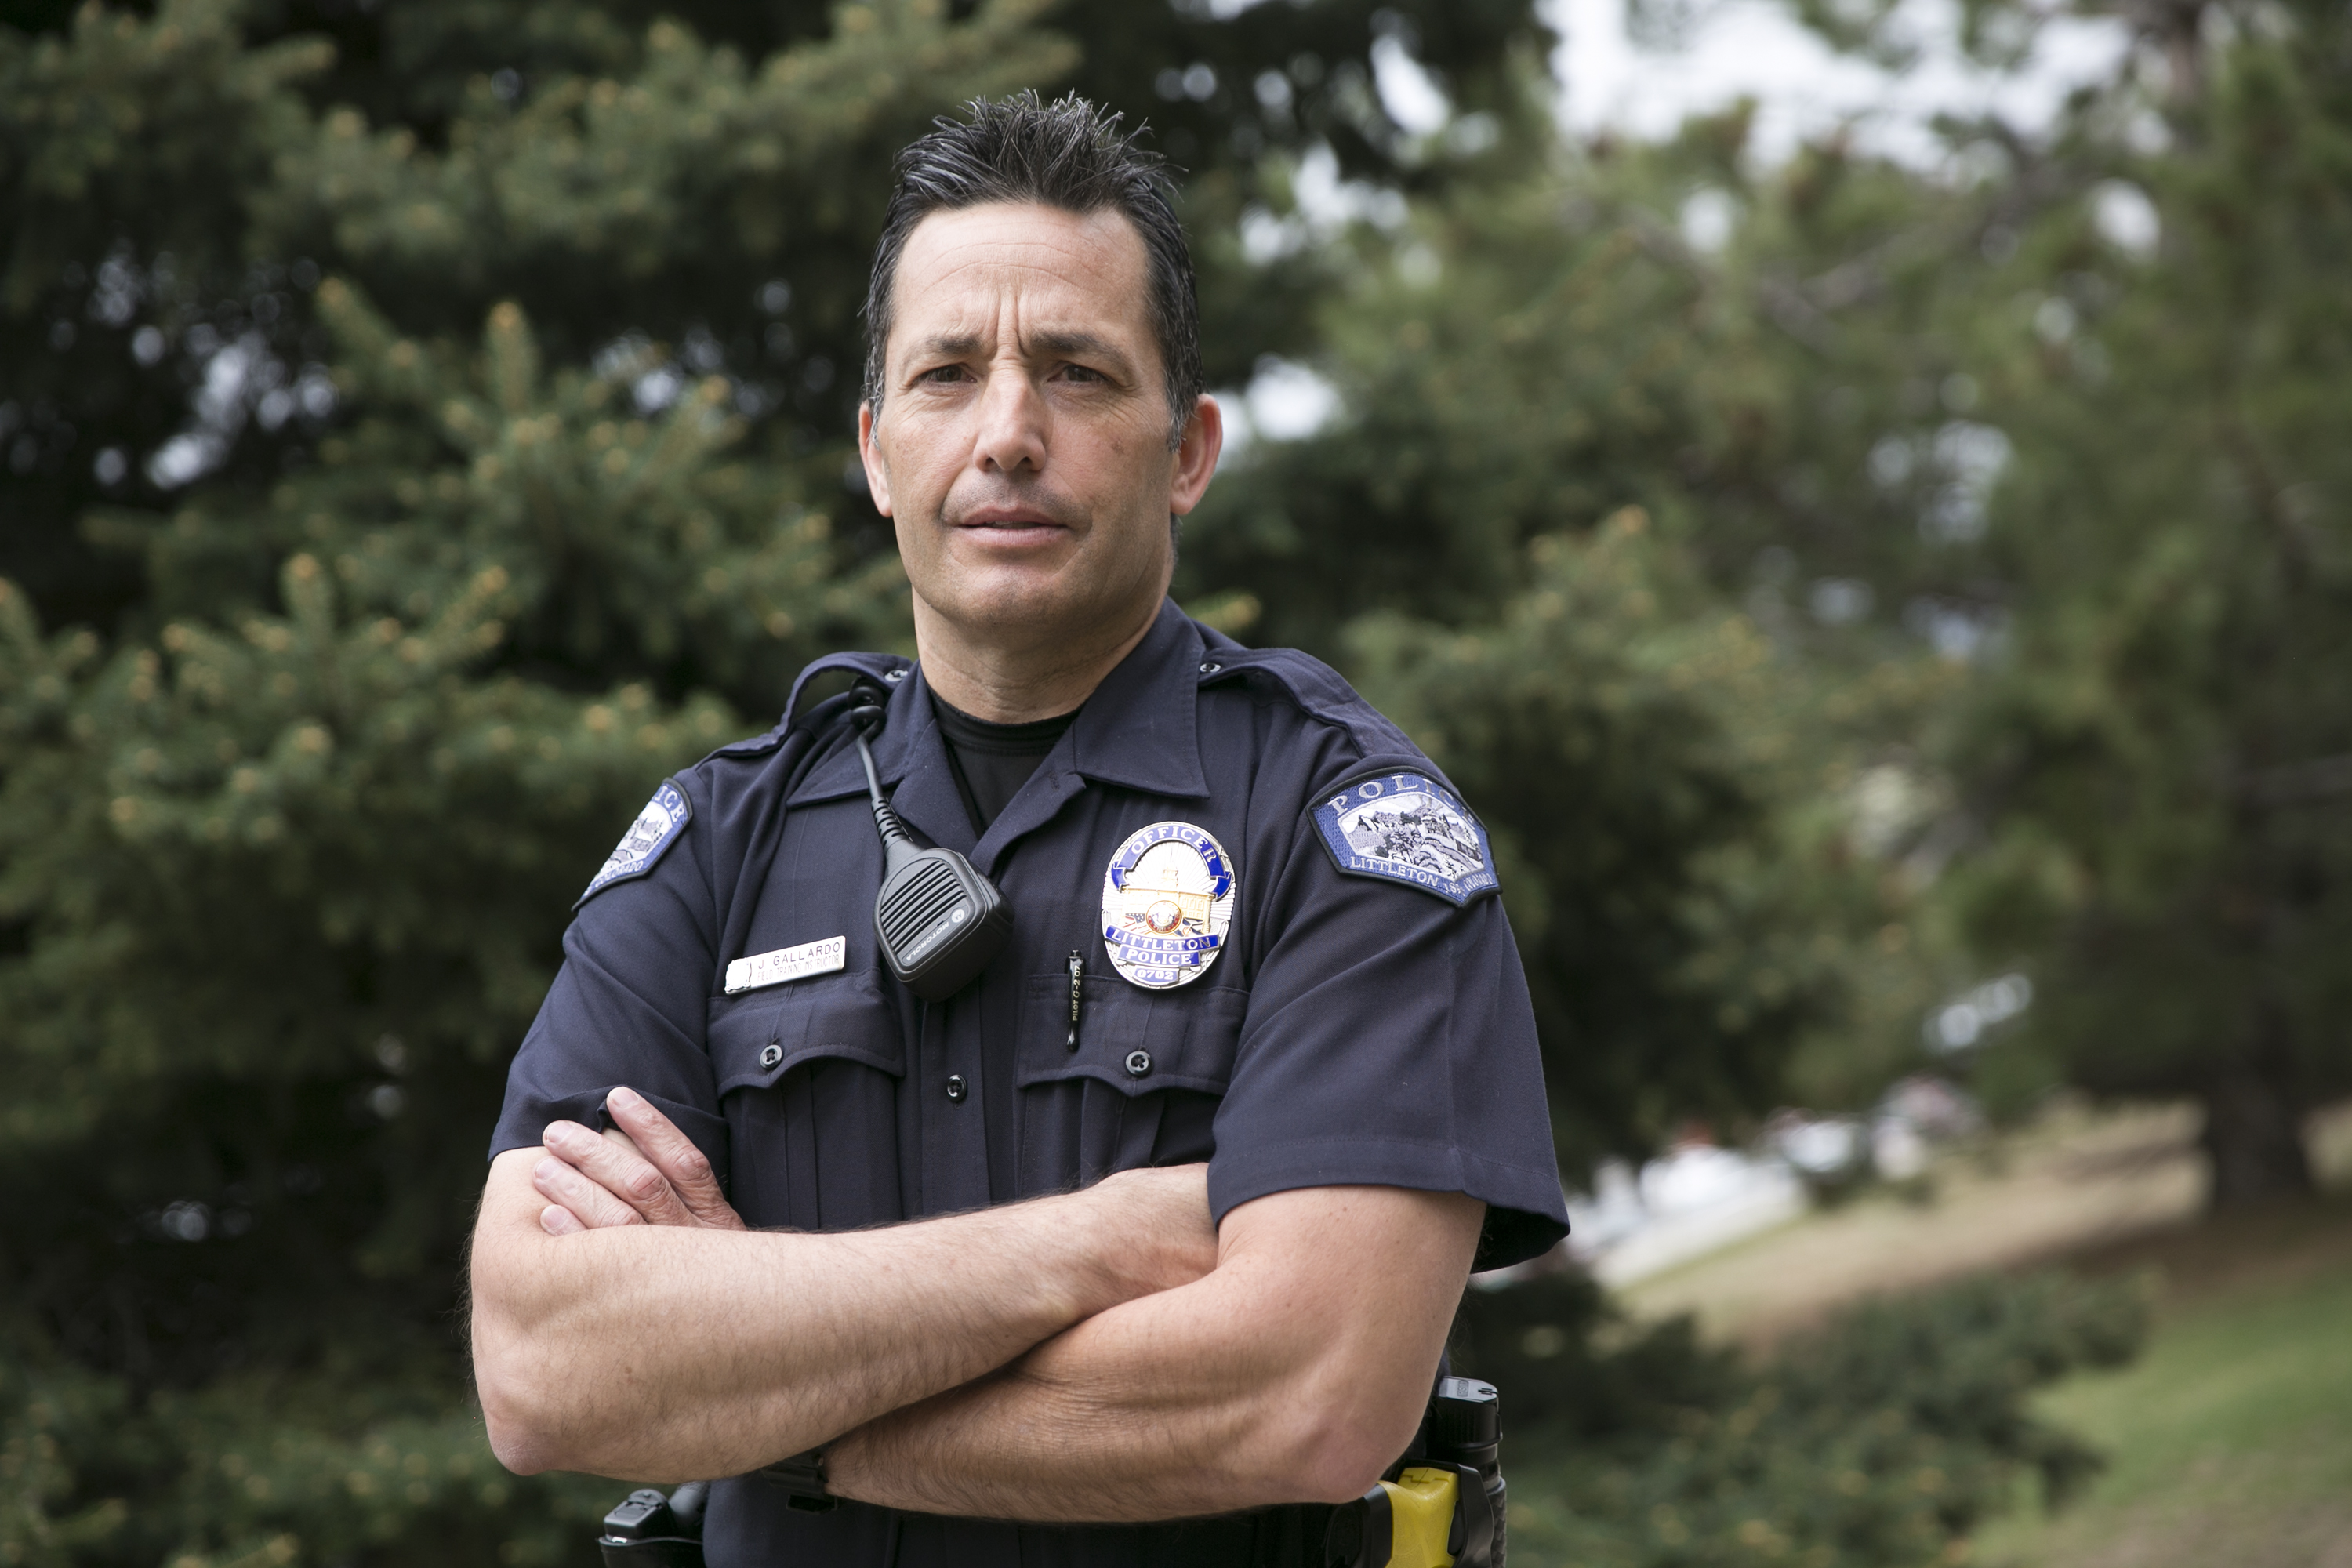 <p>Officer Jason Gallardo, who works at Littleton High School, spoke with Colorado Matters about his experiences in these times of heightened fears.</p>